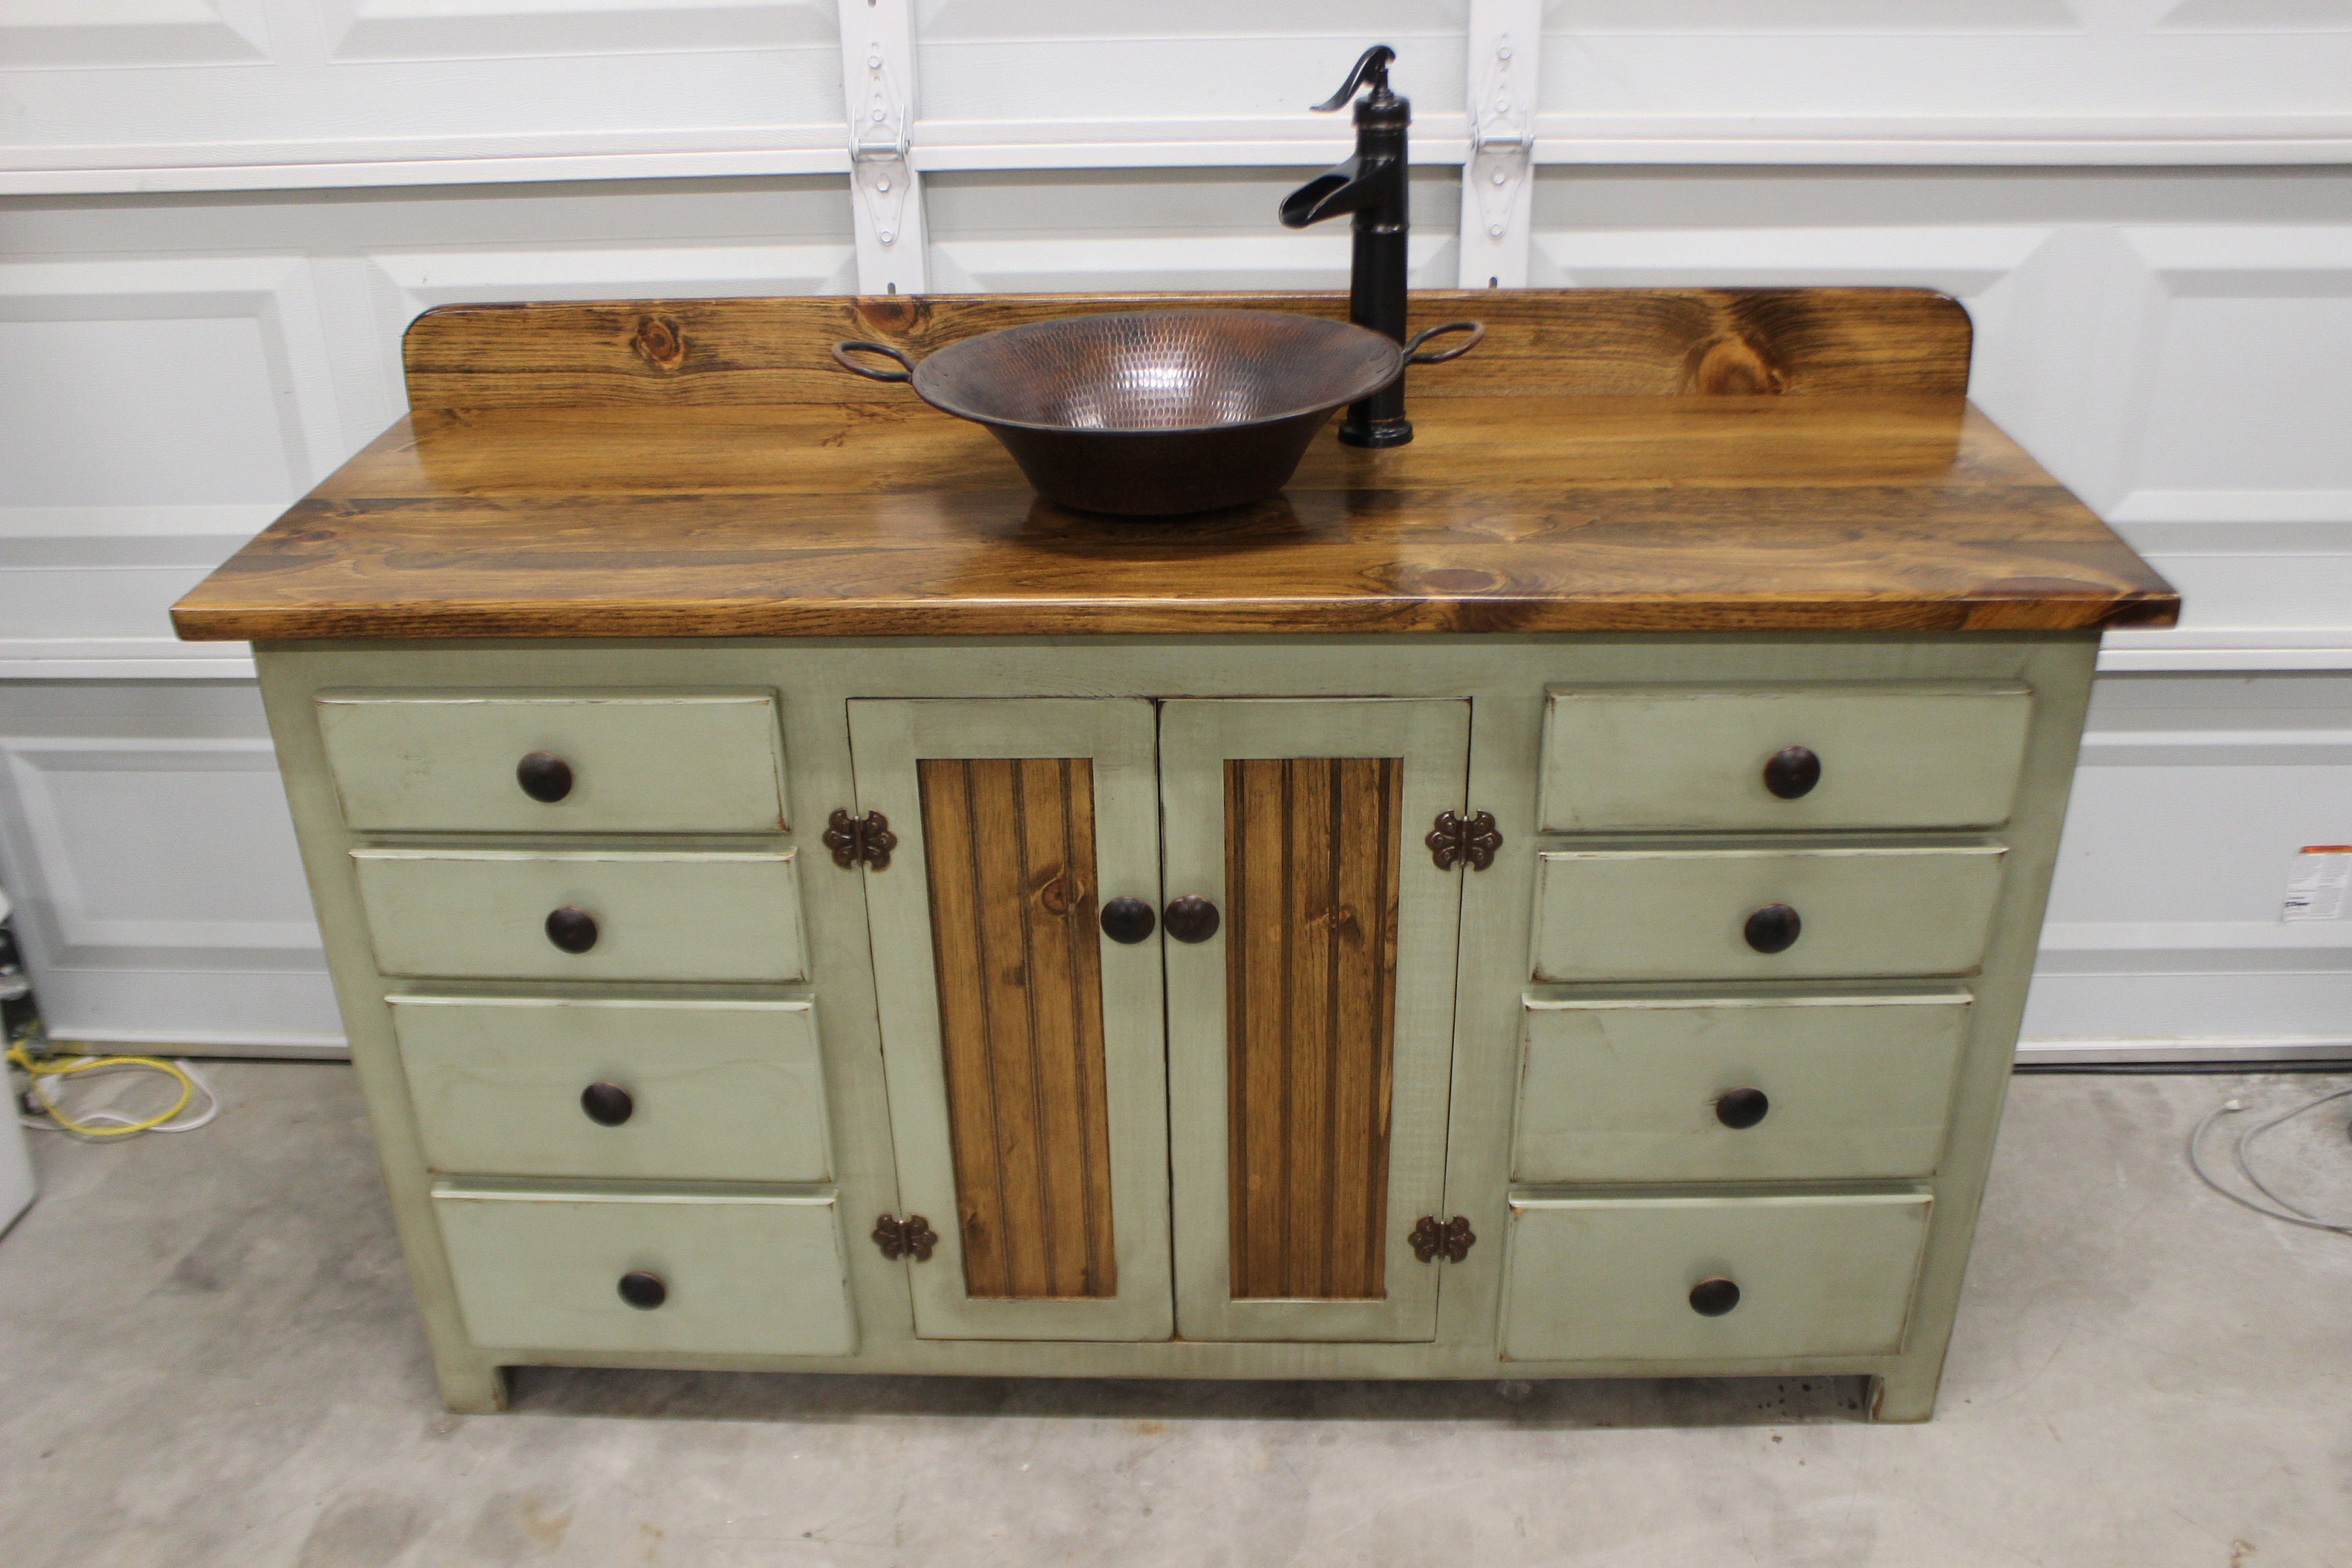 Rustic Farmhouse Vanity Copper Sink 60 Sage Green Bathroom Vanity Bathroom Vanity With Sink Rustic Vanity Farmhouse Vanity